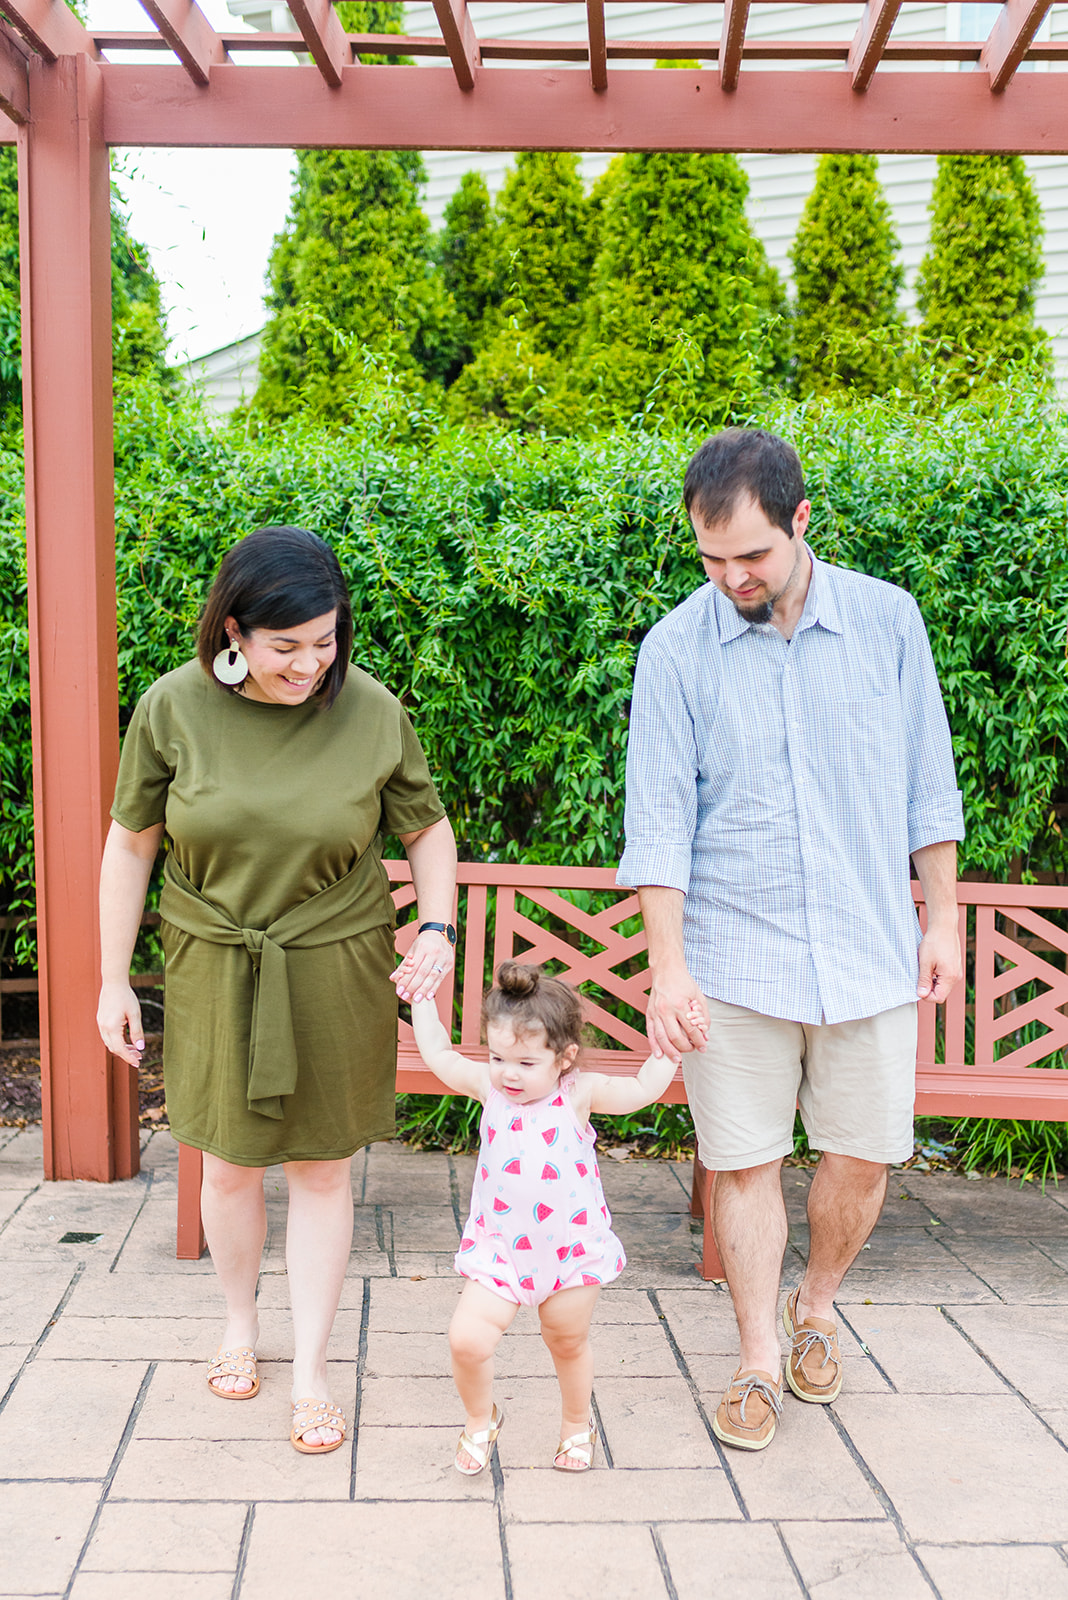 Summer Family Photos-@headtotoechic-Head to Toe Chic